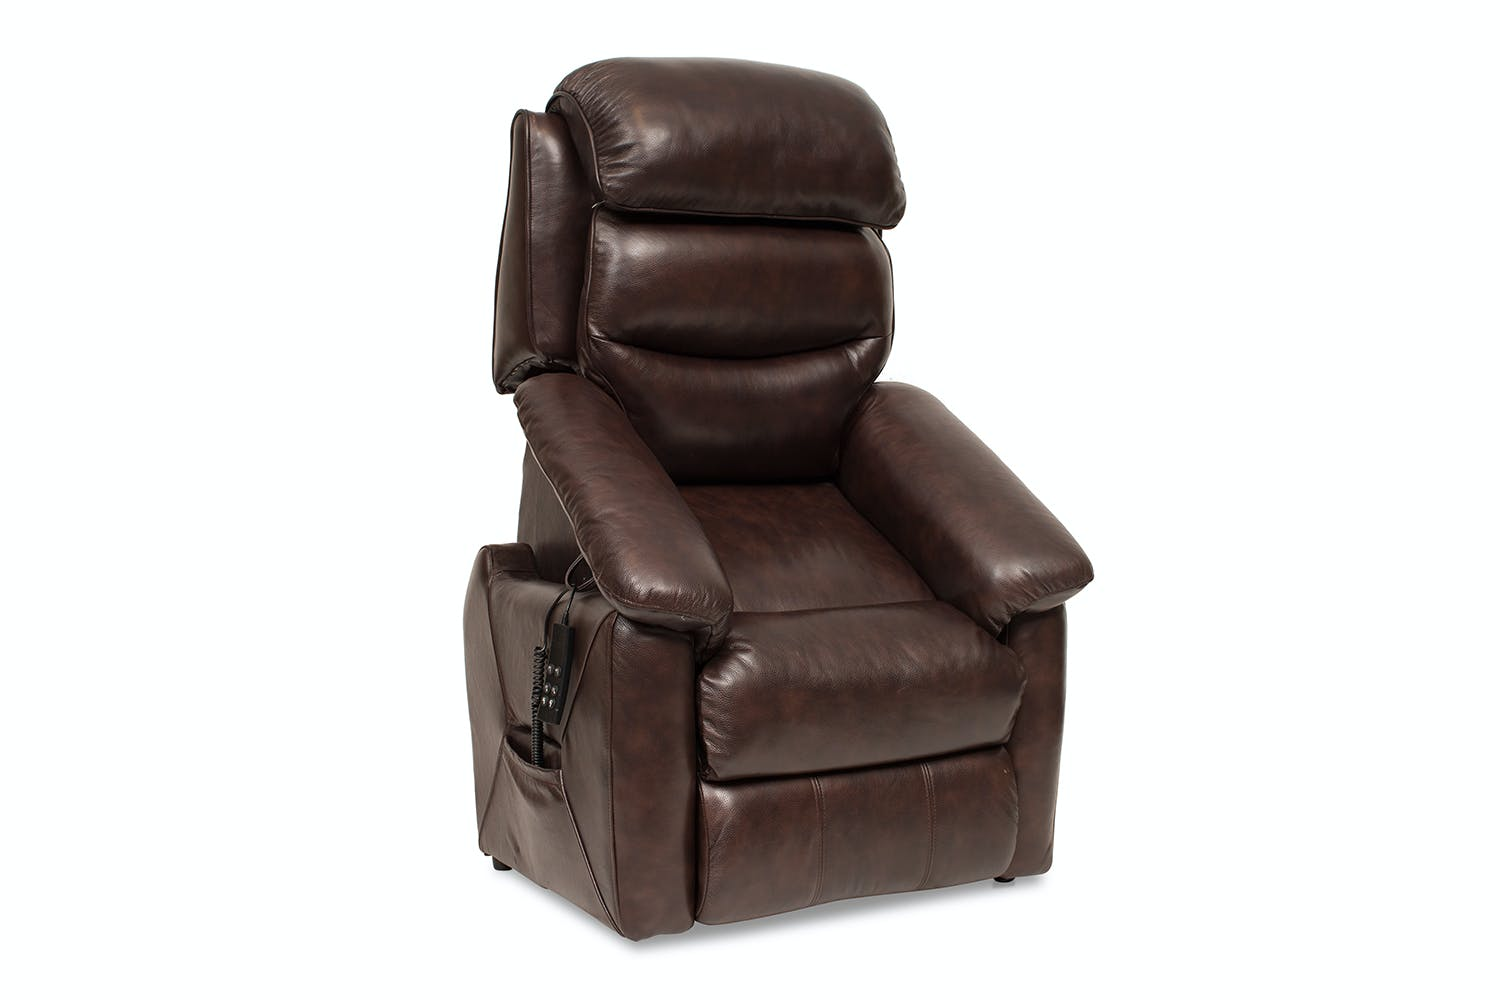 Strange Tyler Lift Tilt Recliner Electric Creativecarmelina Interior Chair Design Creativecarmelinacom